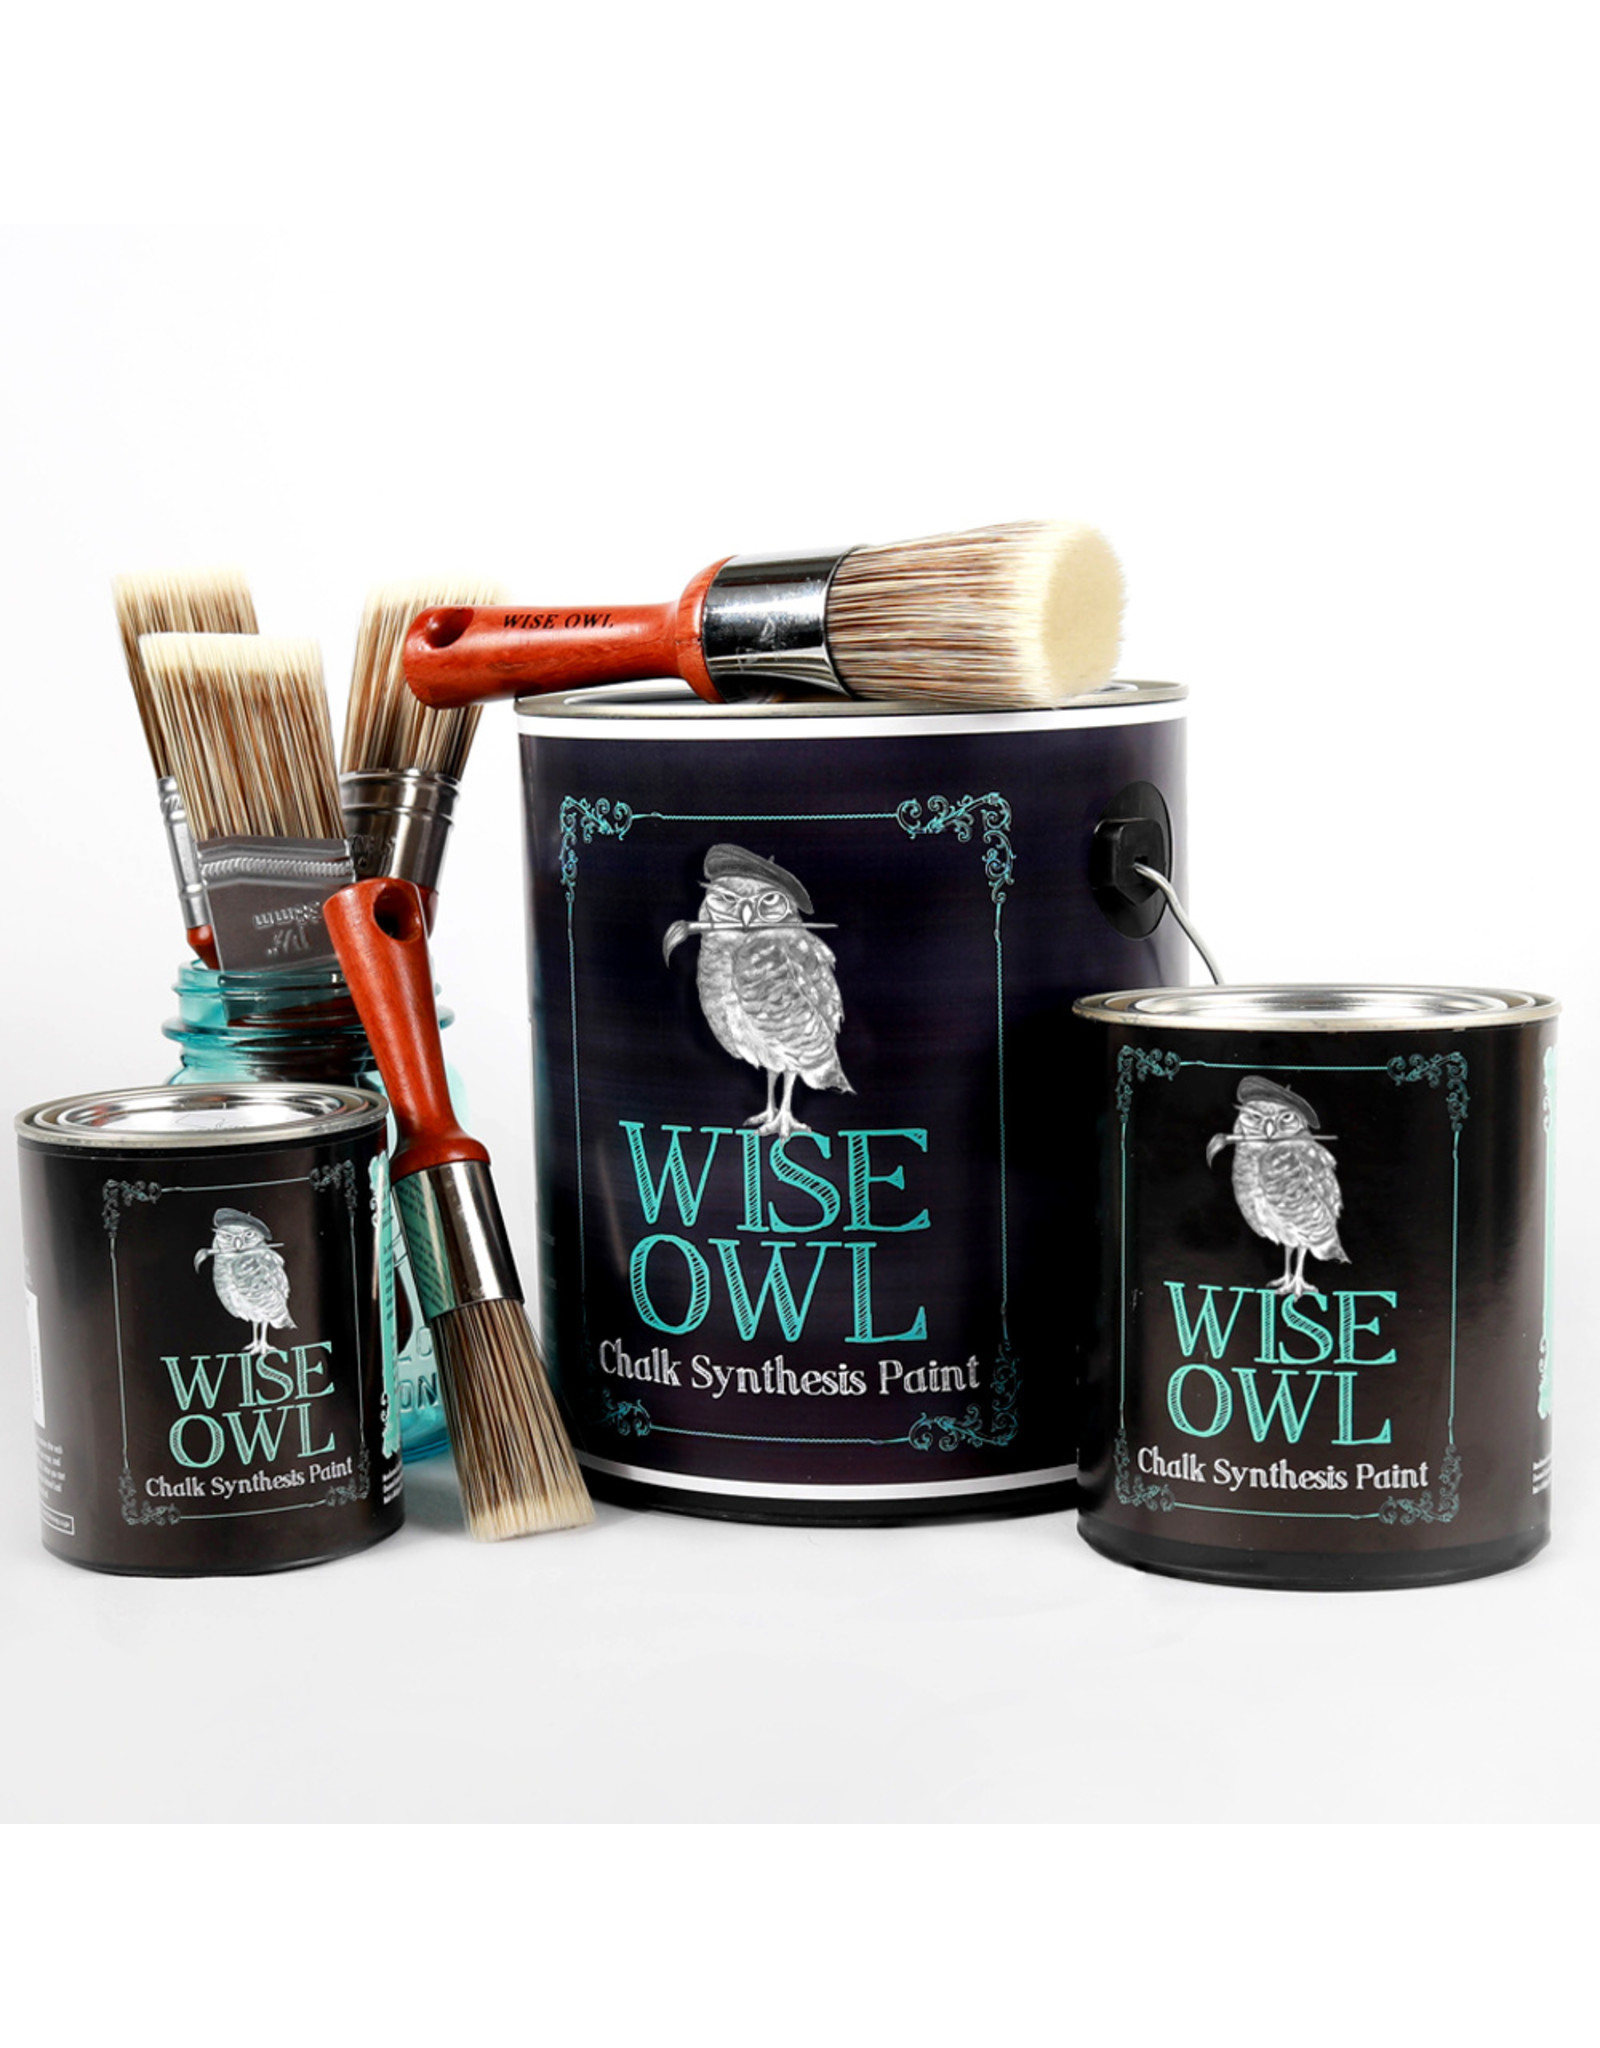 Wise Owl Paint Chalk Synthesis Paint-Turmeric Pint